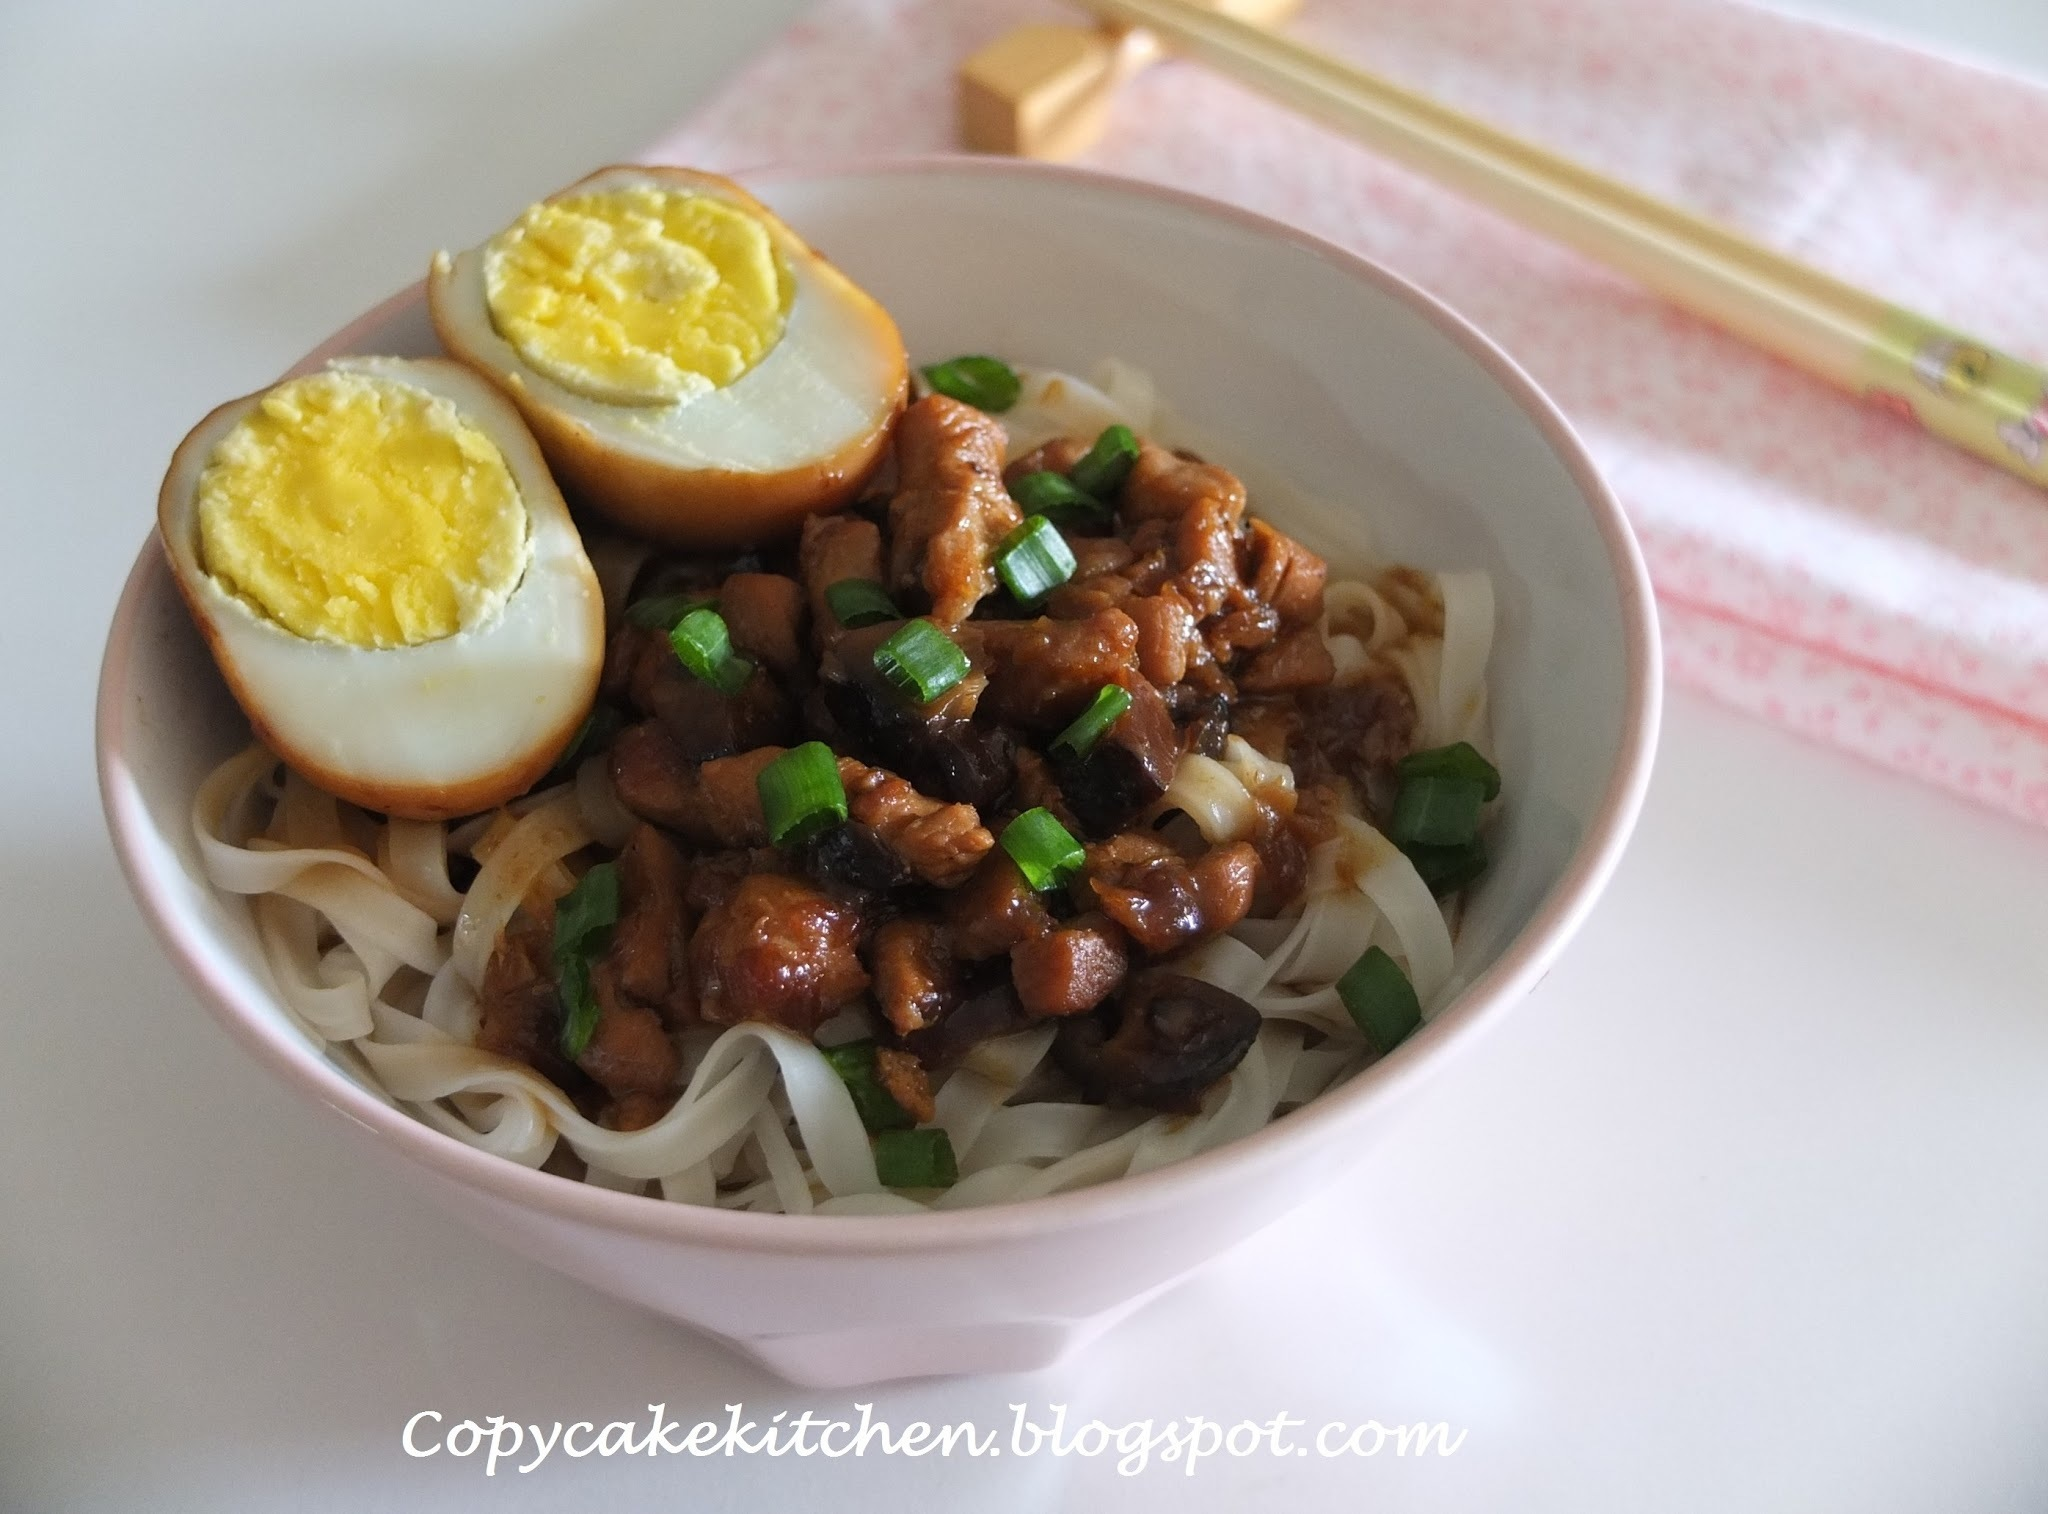 Braised Egg & Minced Meat Noodles (滷蛋与肉燥面)